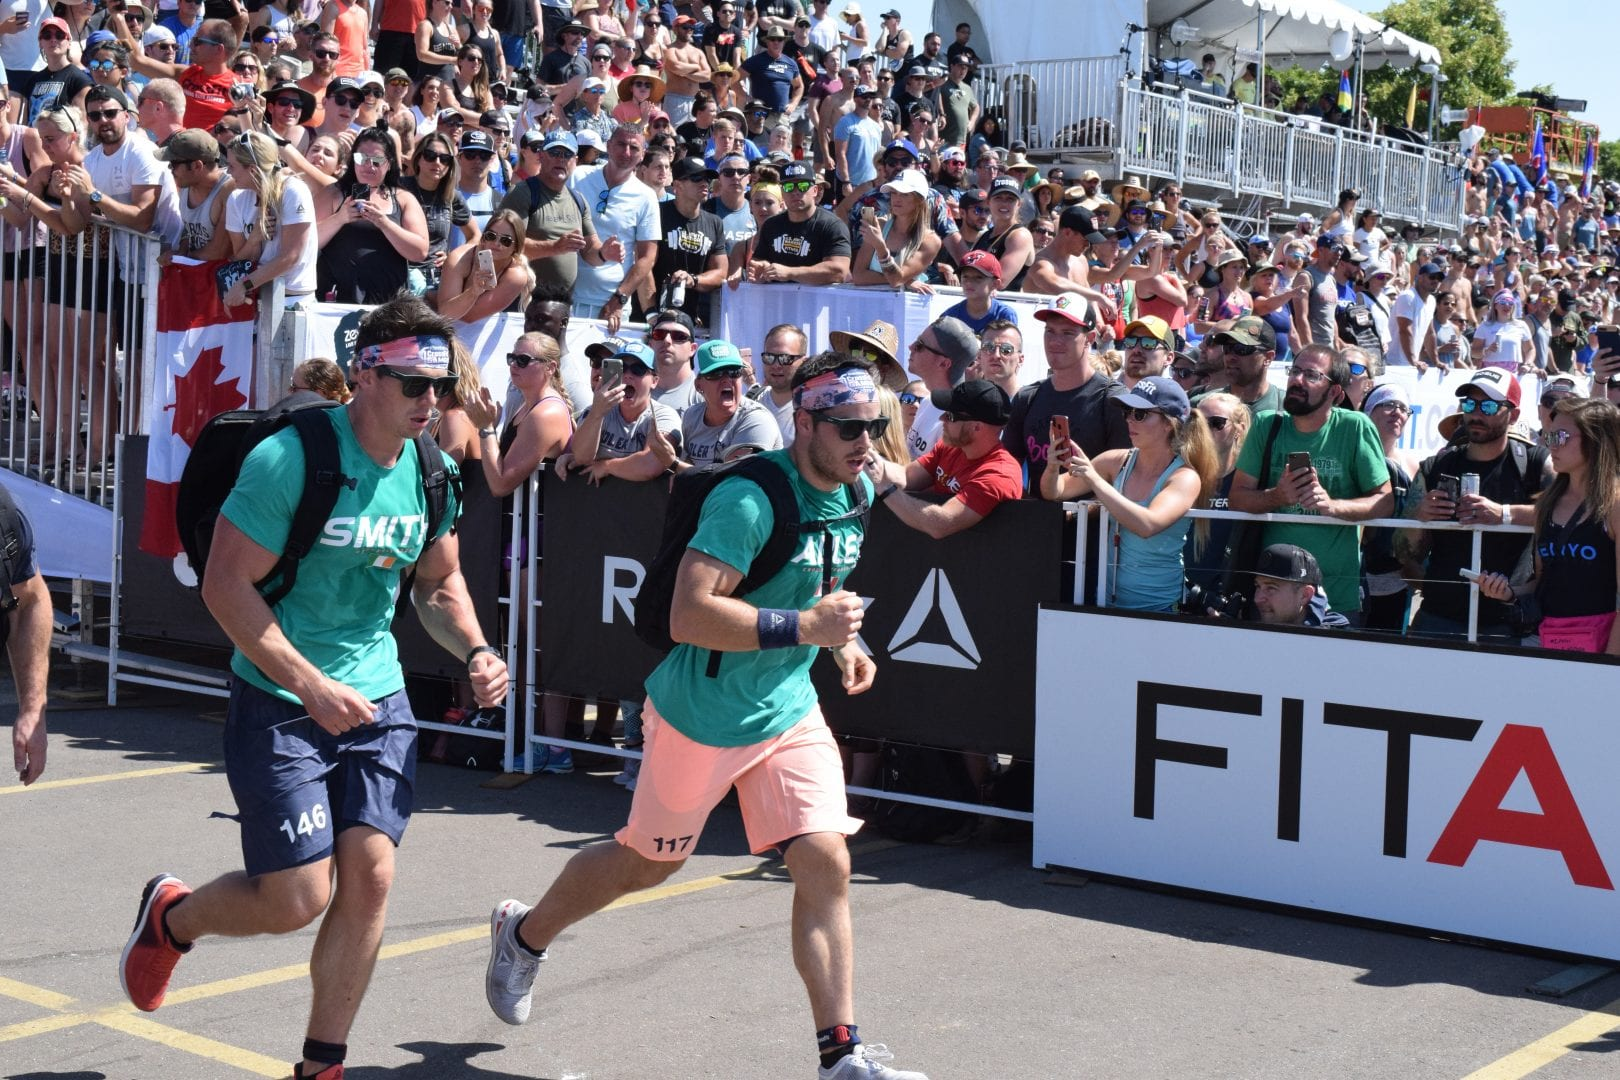 Jeffrey Adler completes the Ruck Run event at the 2019 CrossFit Games